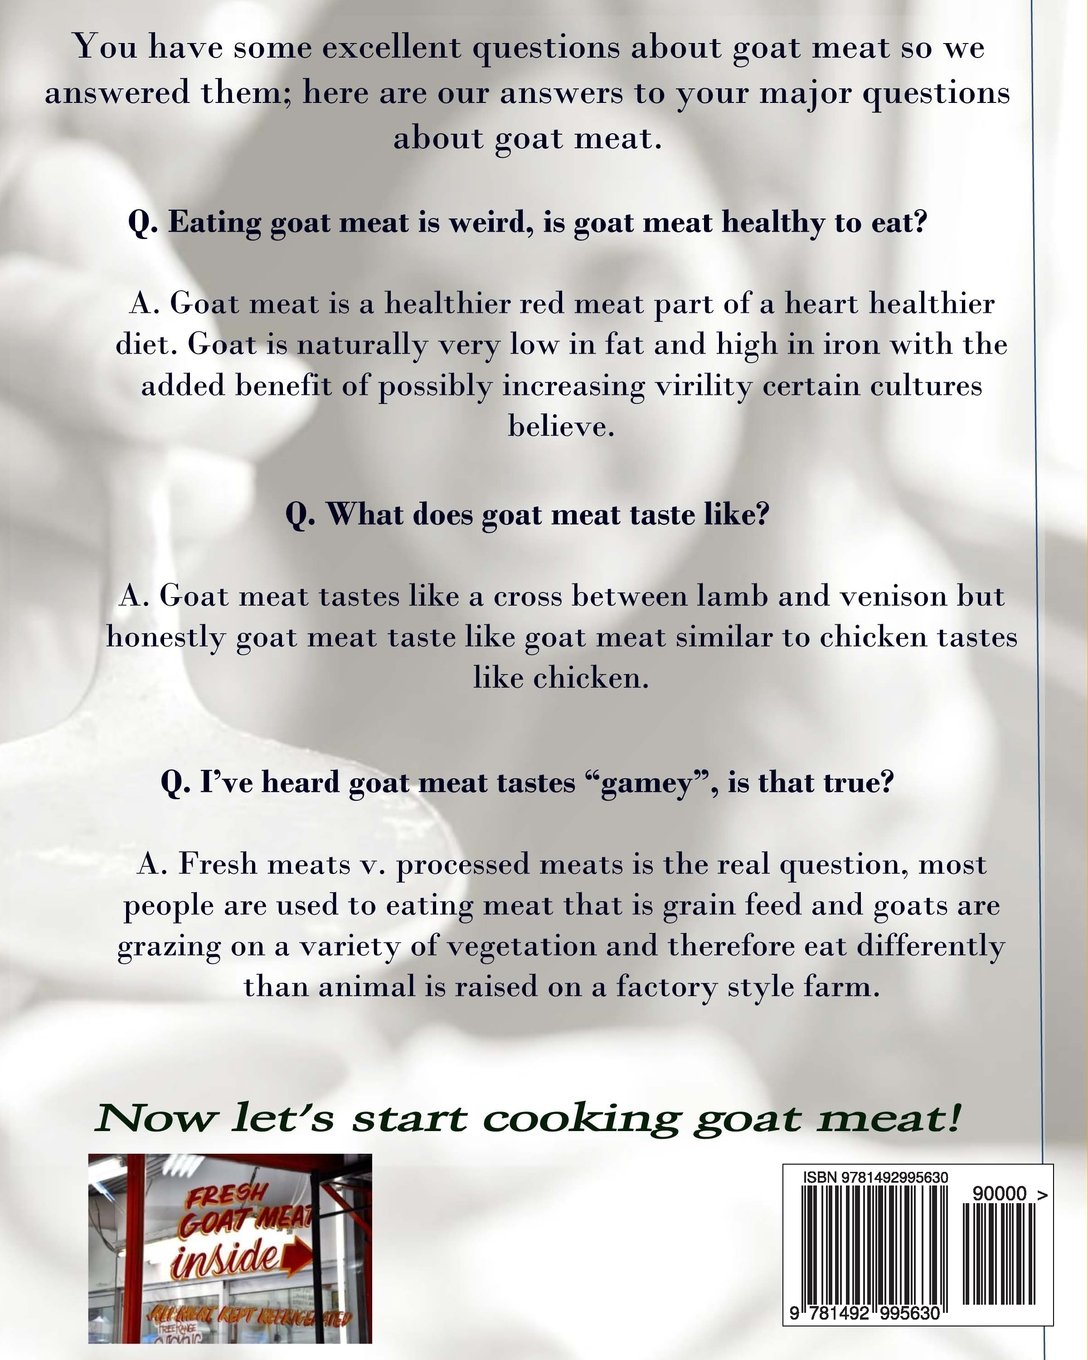 Goat meat benefits